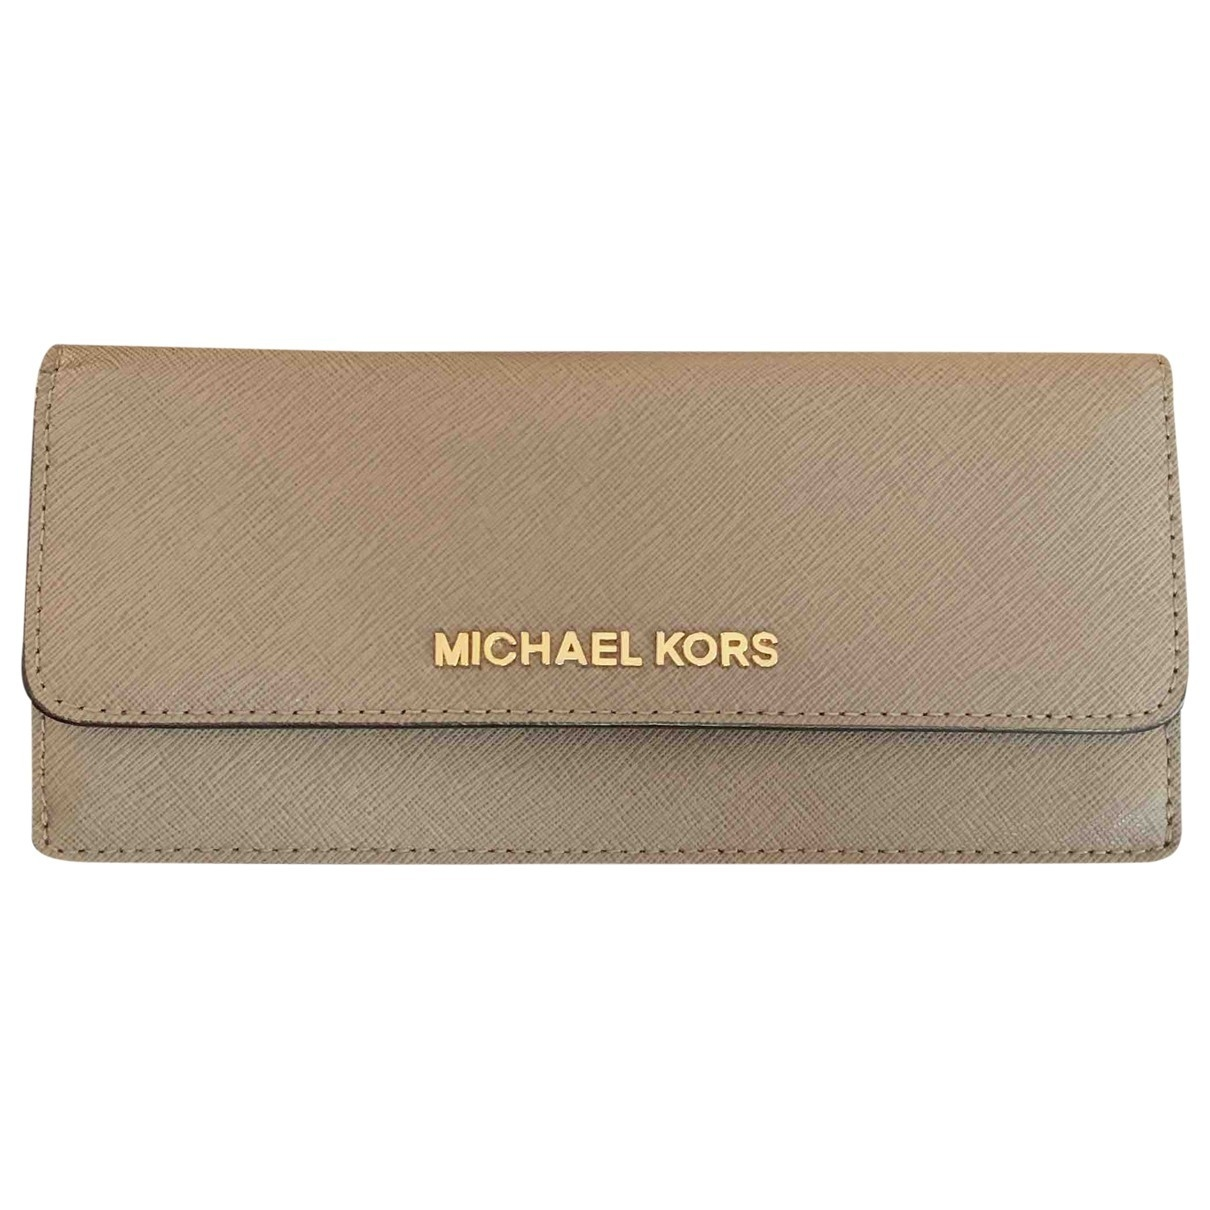 Michael Kors Jet Set Ecru Leather wallet for Women \N